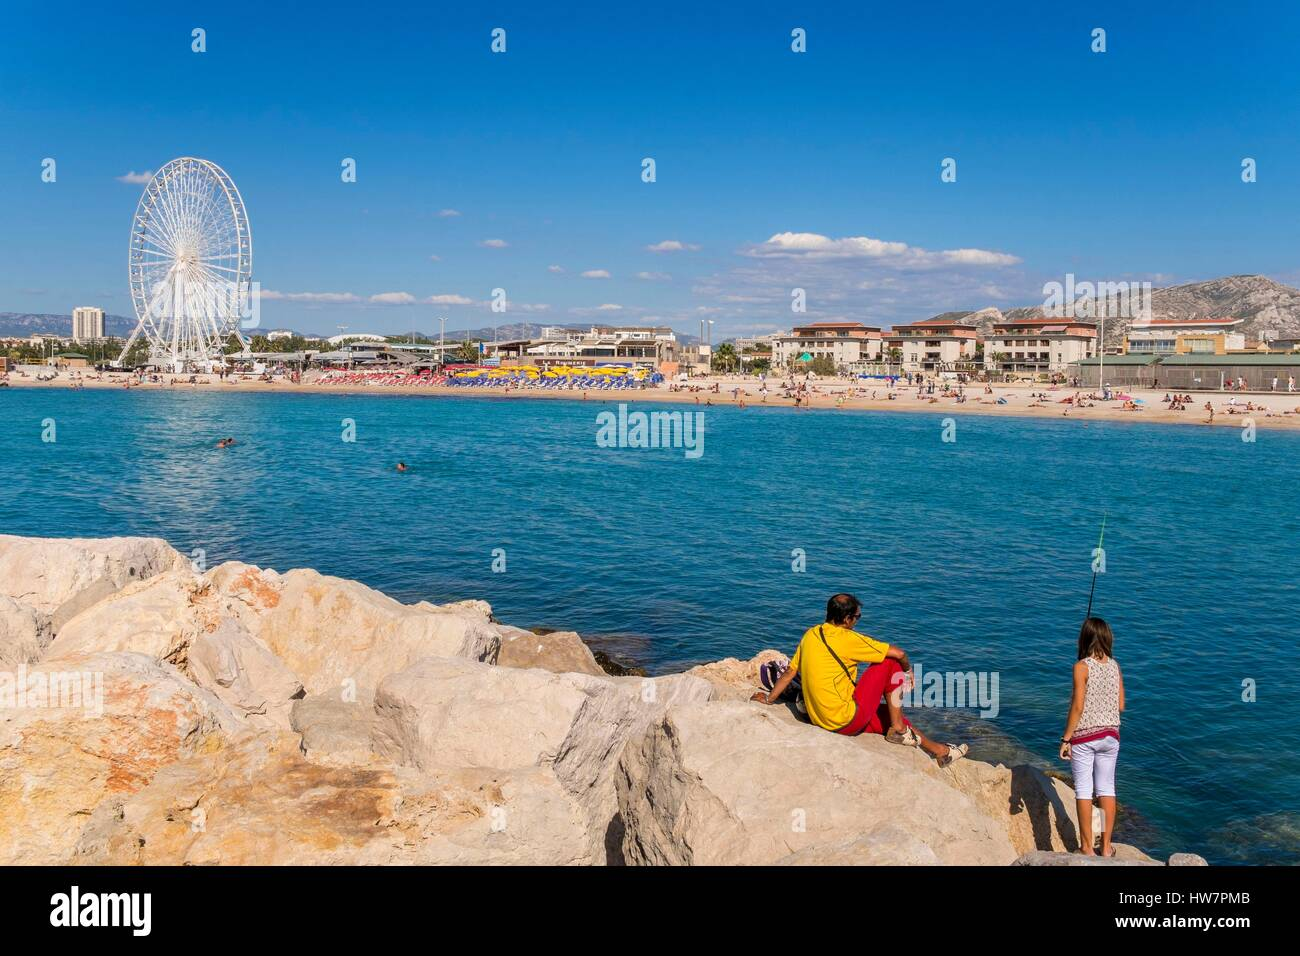 France, Bouches du Rhone, Marseille, the Prado beaches, the Borely beach and the Big Wheel - Stock Image